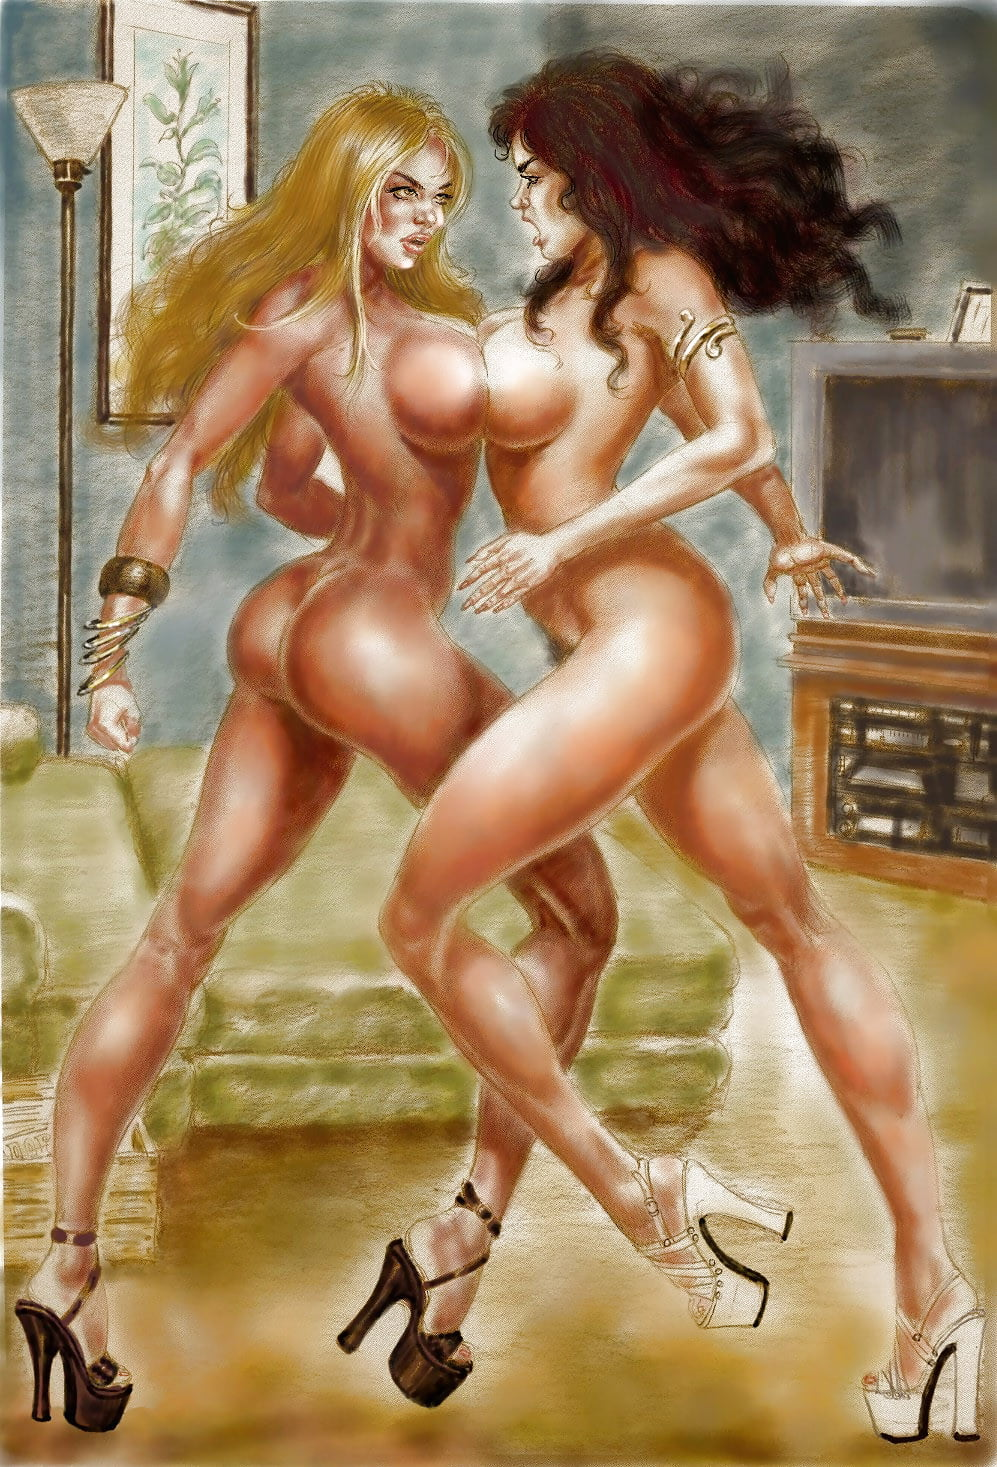 Free Cartoon Sex And Cartoon Porn Pictures Full Of Wild Sexy Cartoons